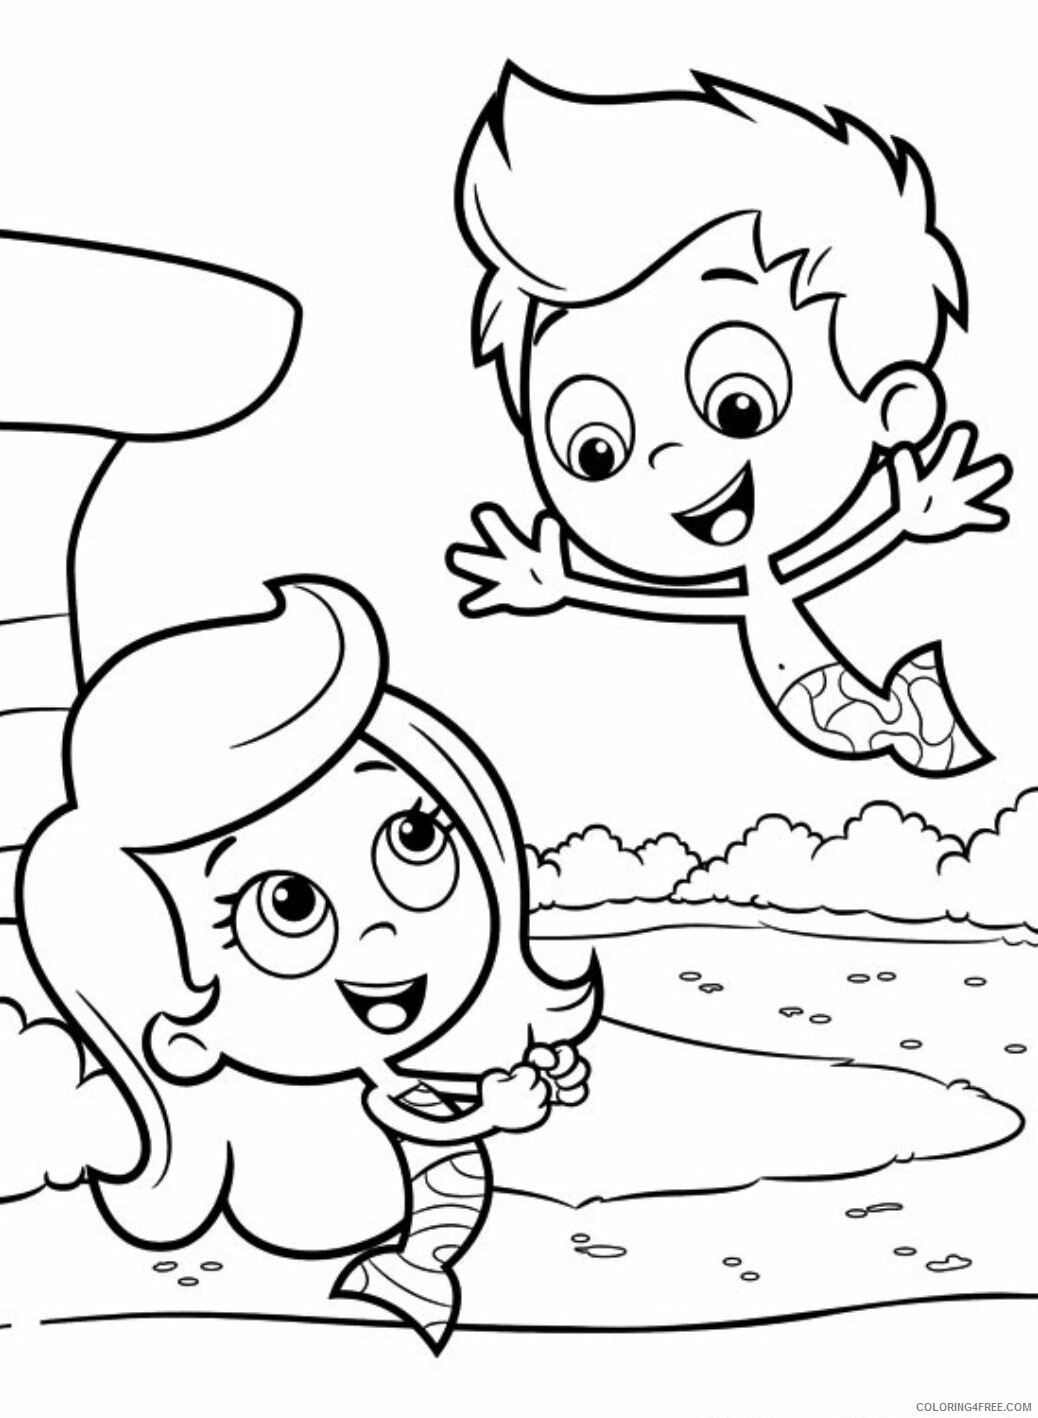 Bubble Guppies Coloring Pages TV Film Free Bubble Guppies 2 Printable 2020 01668 Coloring4free